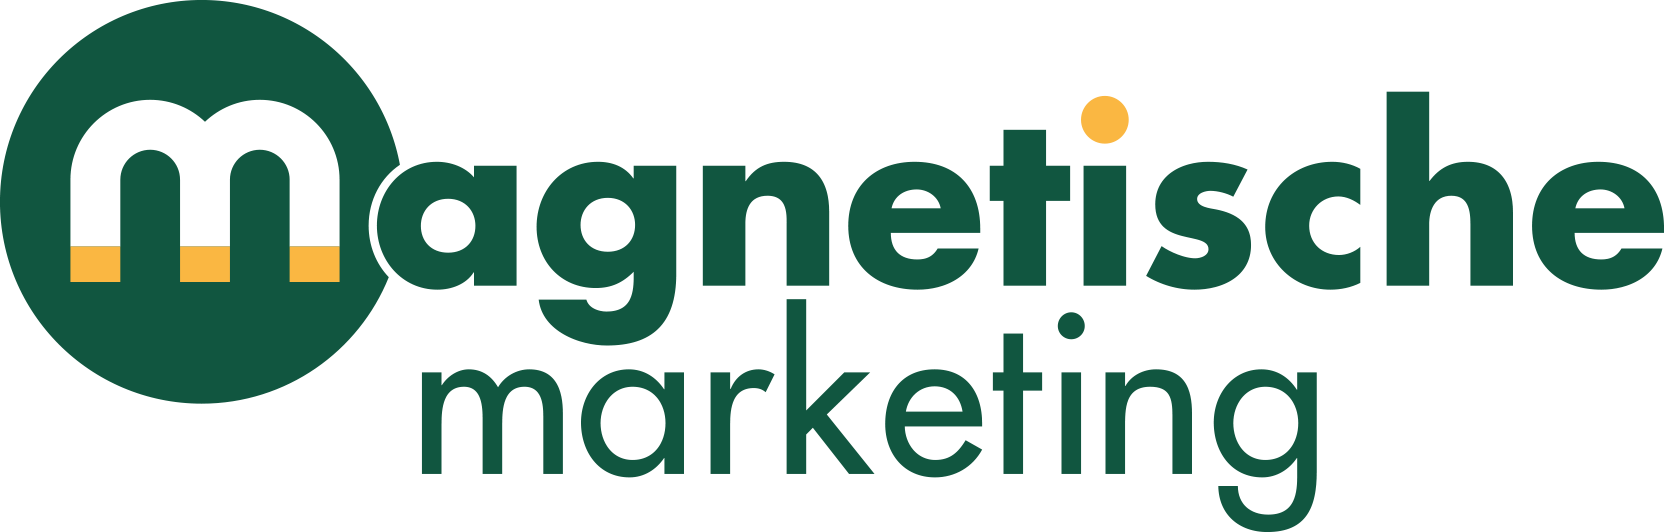 Magnetische Marketing logo